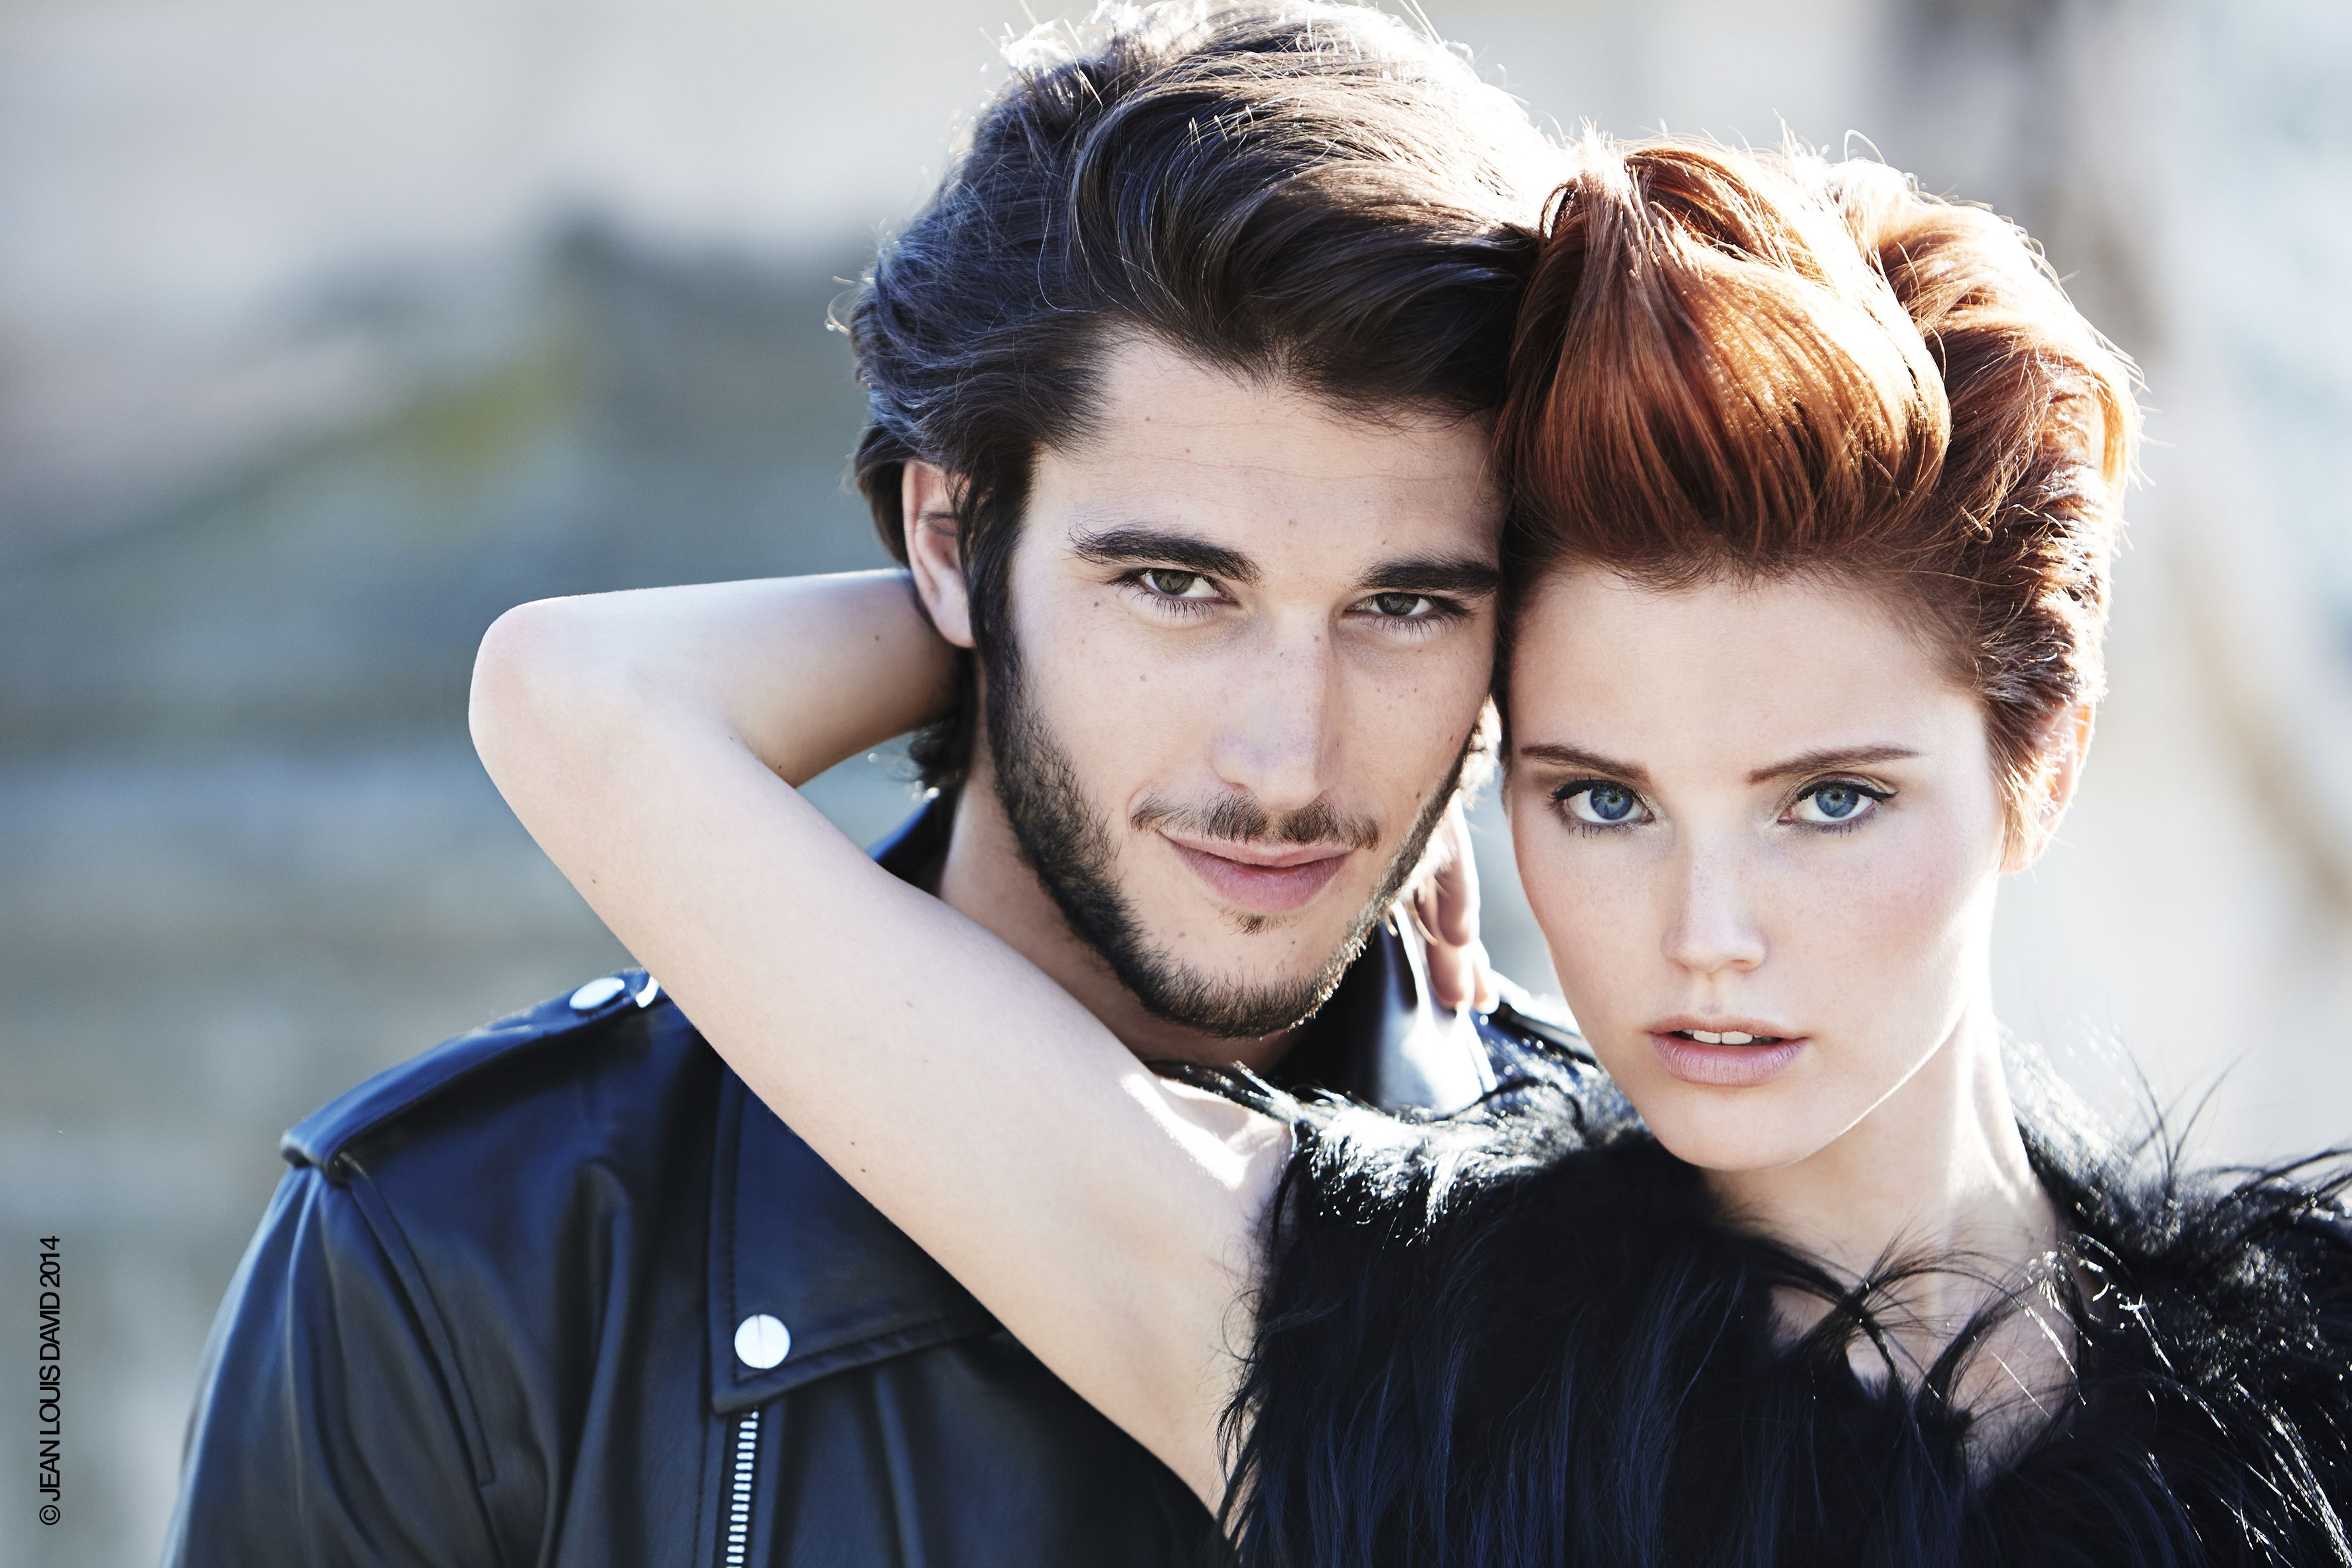 Boyfriend style ! #collection #rockmycity #hair #cheveux #trends #tendance #coiffure #AW14 #JeanLouisDavid